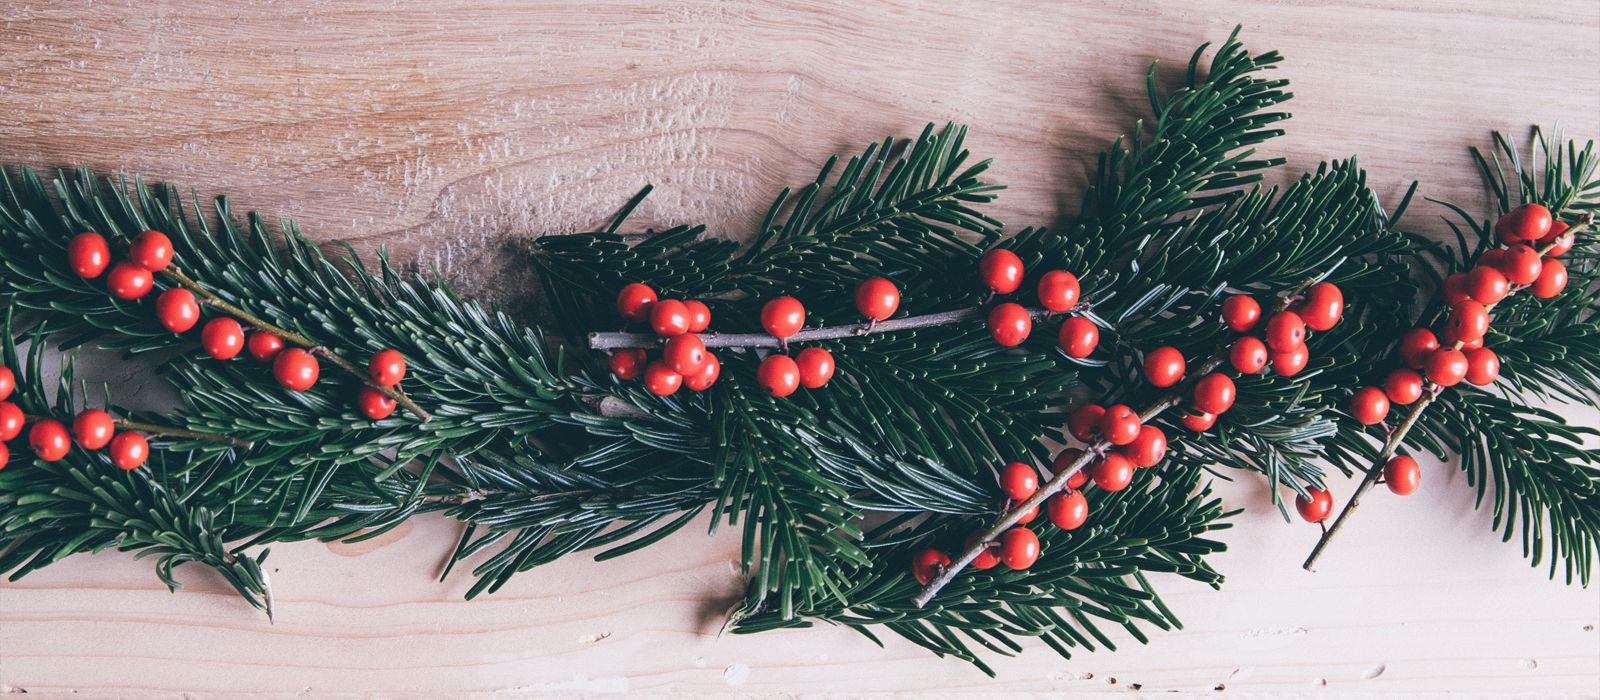 How to Avoid Overspending This Silly Season